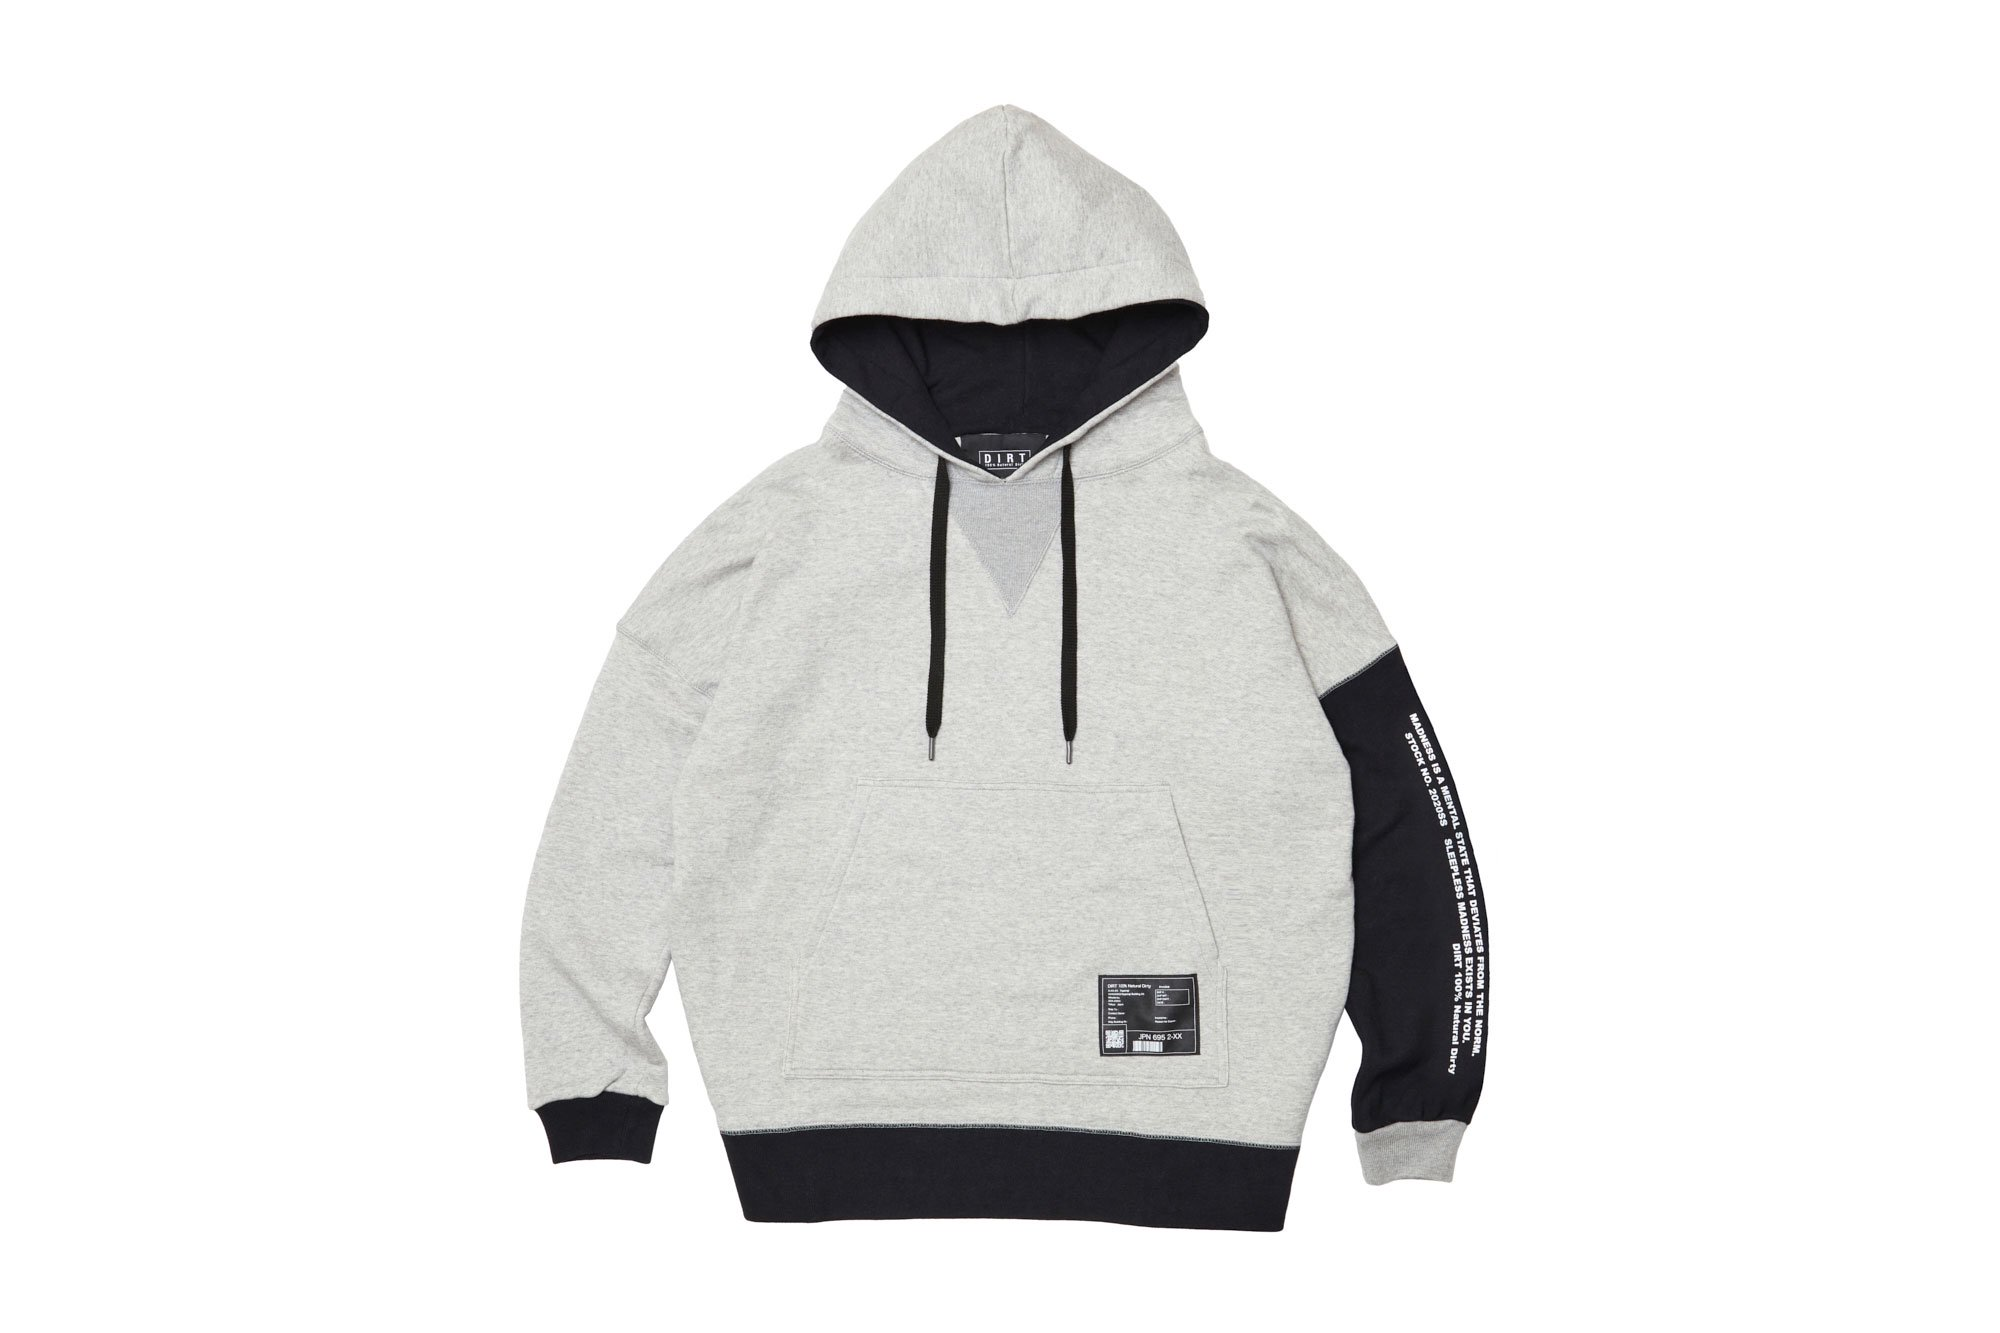 <img class='new_mark_img1' src='https://img.shop-pro.jp/img/new/icons14.gif' style='border:none;display:inline;margin:0px;padding:0px;width:auto;' />2020AW collection Bicolor Hoodie GR